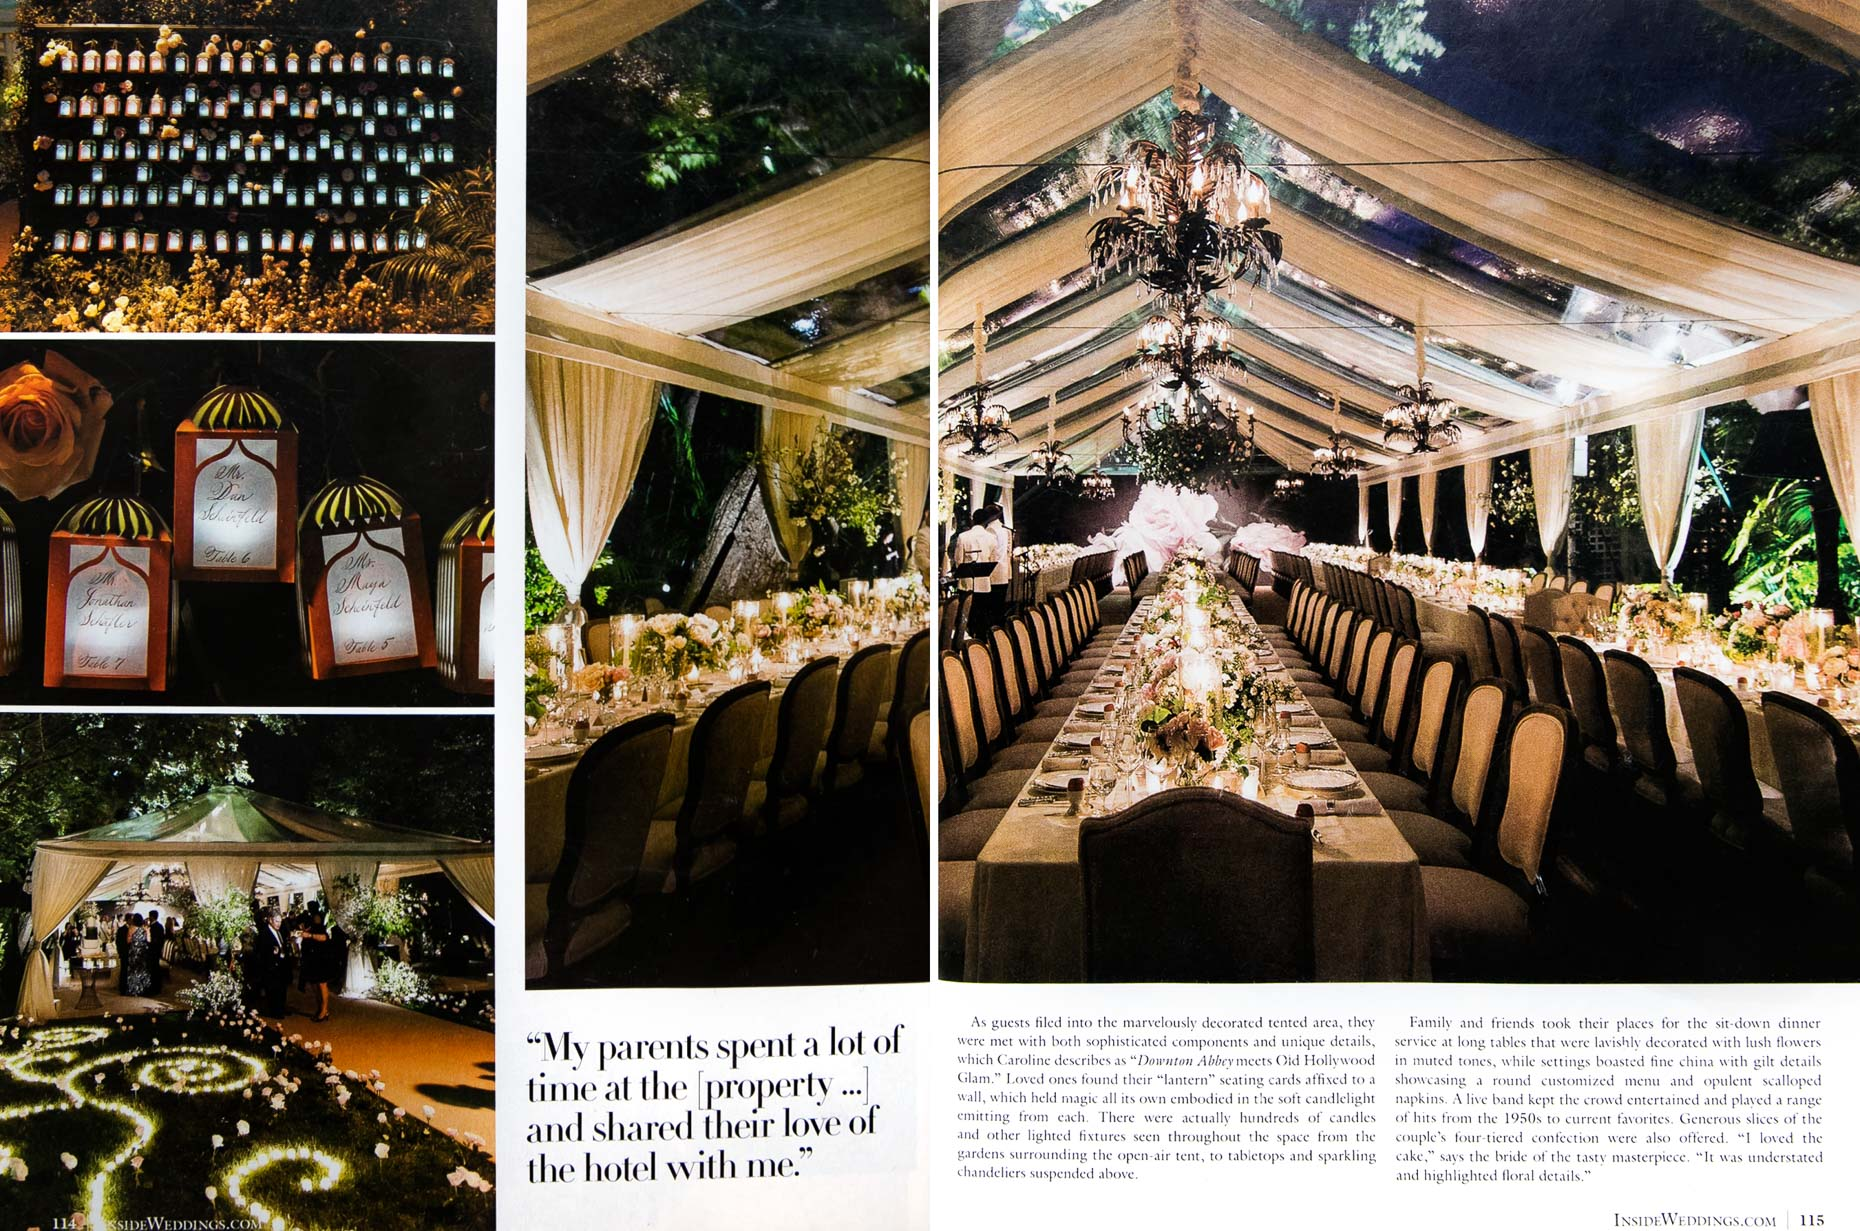 015_insideweddings_spread4_spring2016